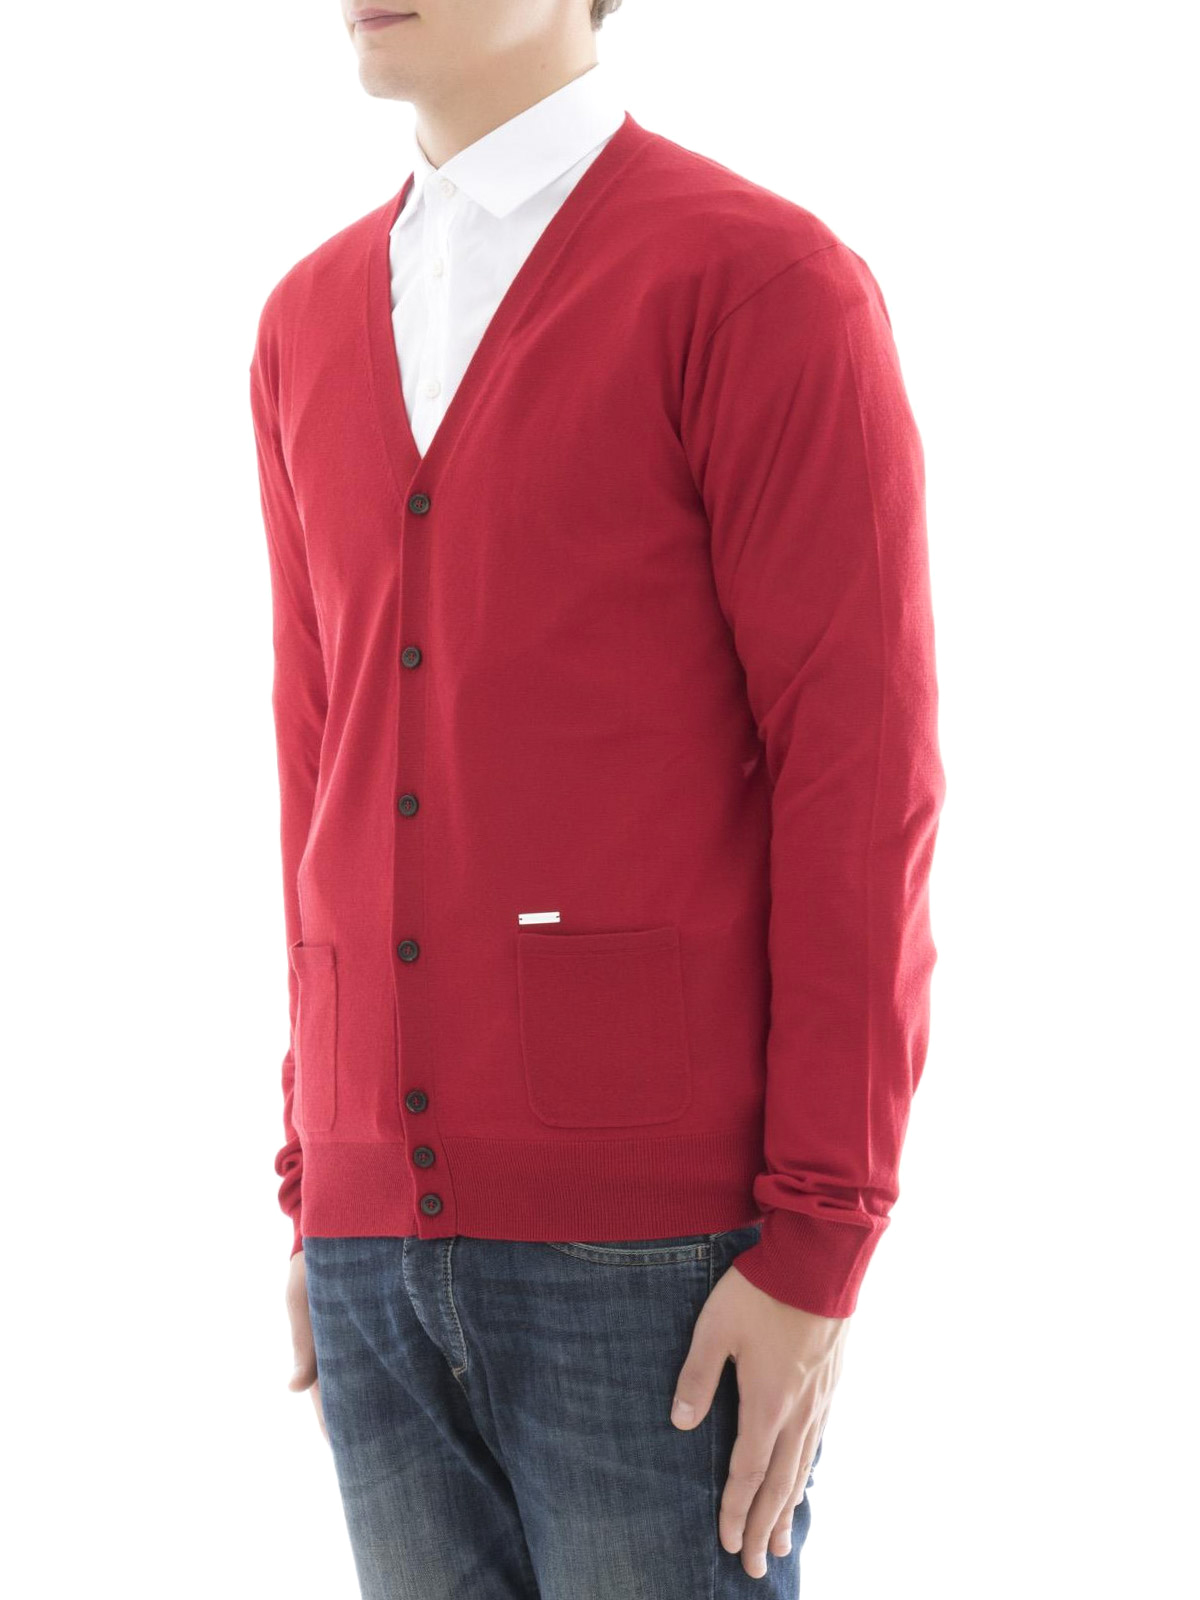 Red wool cardigan by Dsquared2 - cardigans | iKRIX